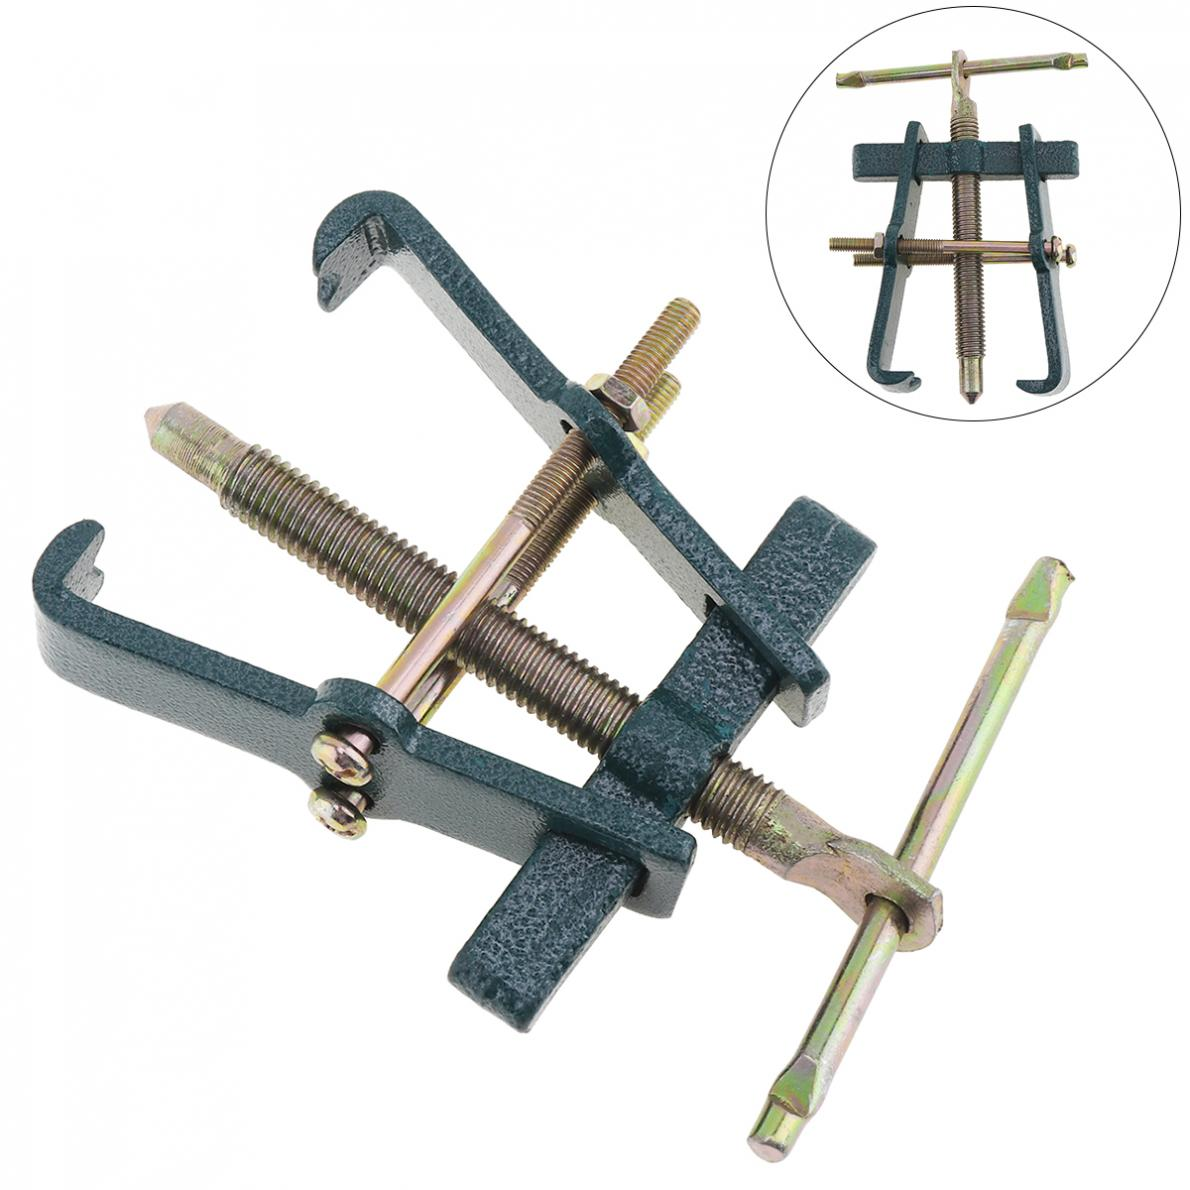 3 Inch Durable Two-claw Puller Separate Lifting Device Multi-purpose Pull Strengthen Bearing Rama for Auto <font><b>Mechanic</b></font> Hand <font><b>Tools</b></font> image